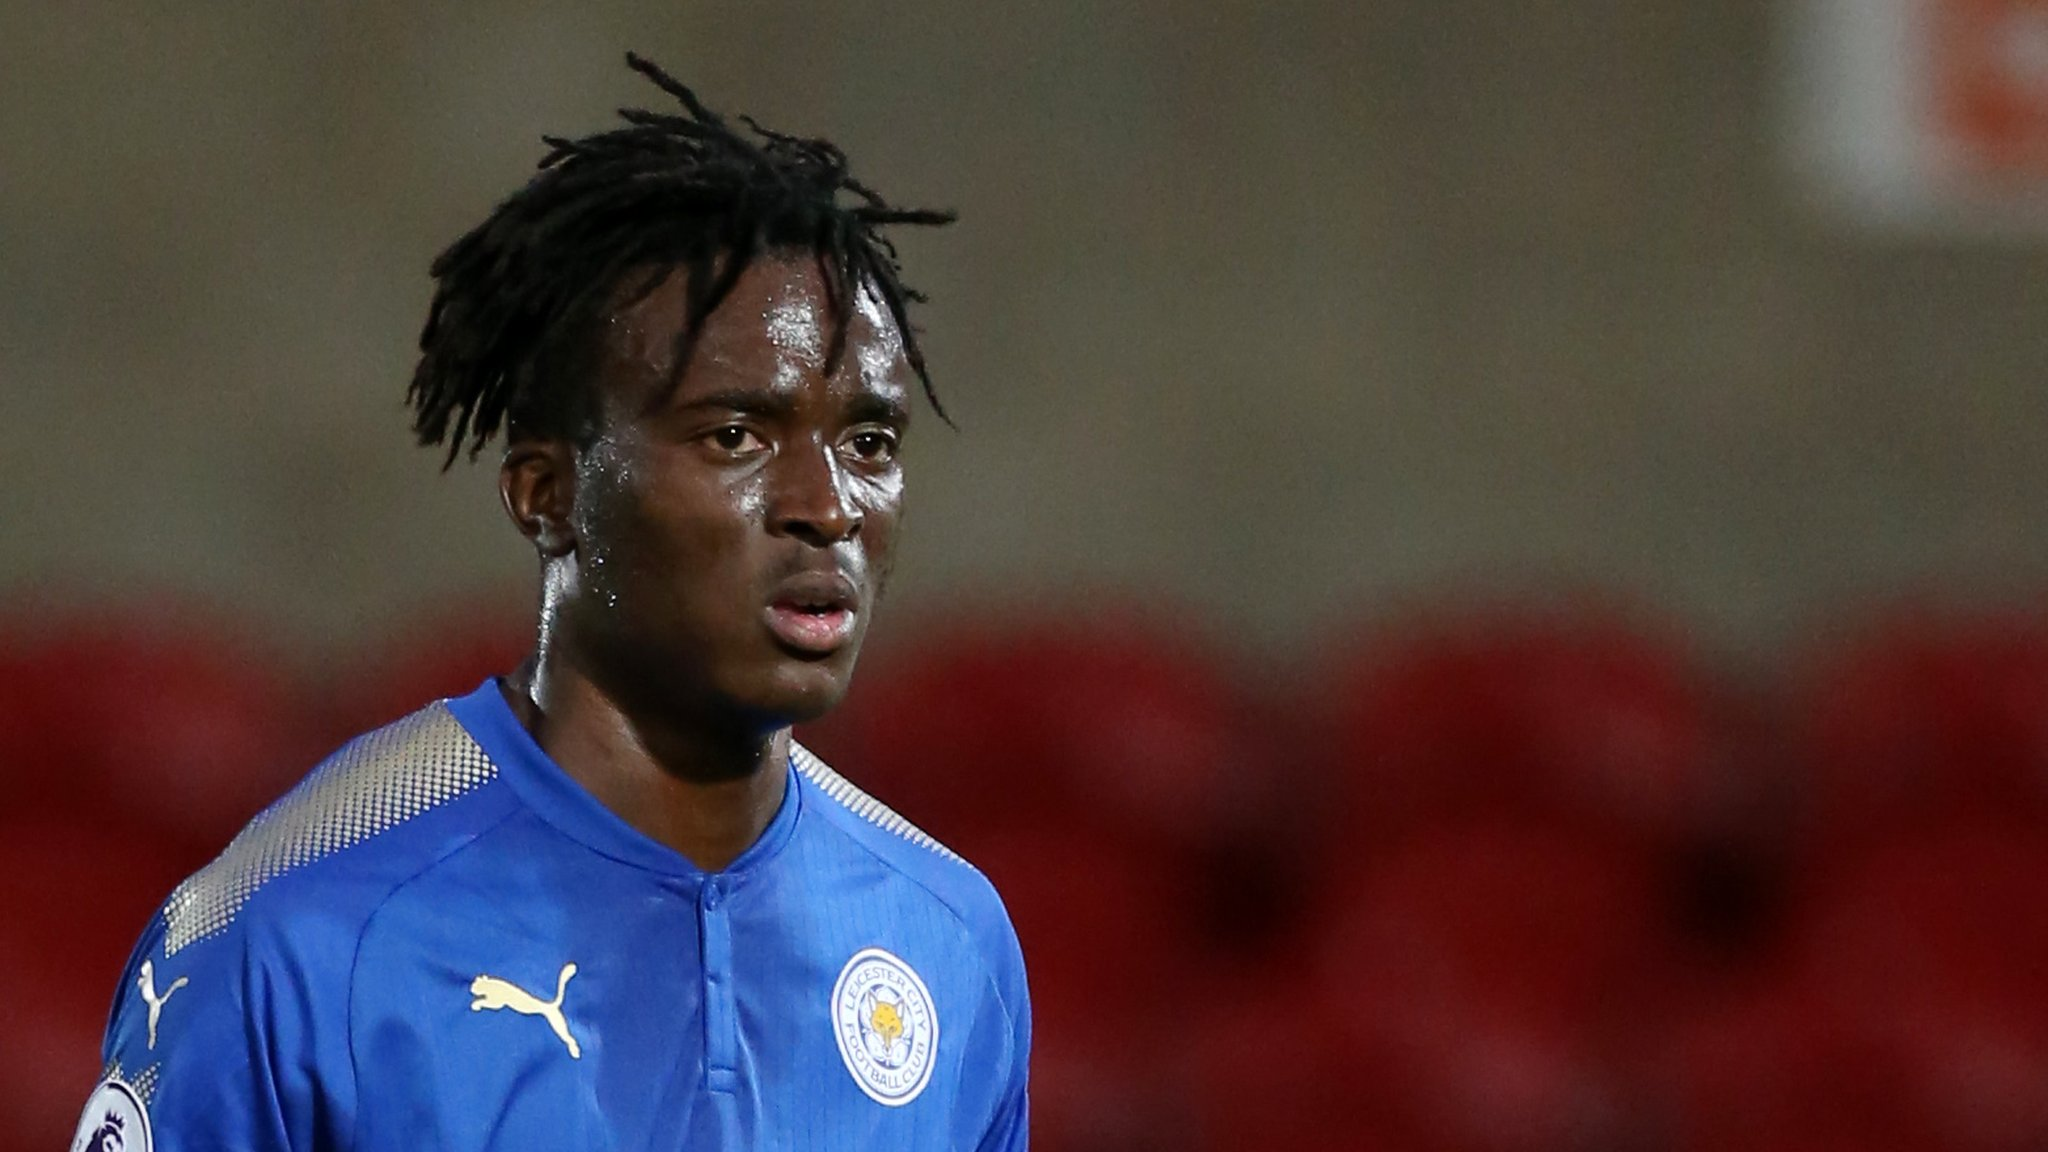 Josh Debayo: Cheltenham Town sign defender after release by Leicester City